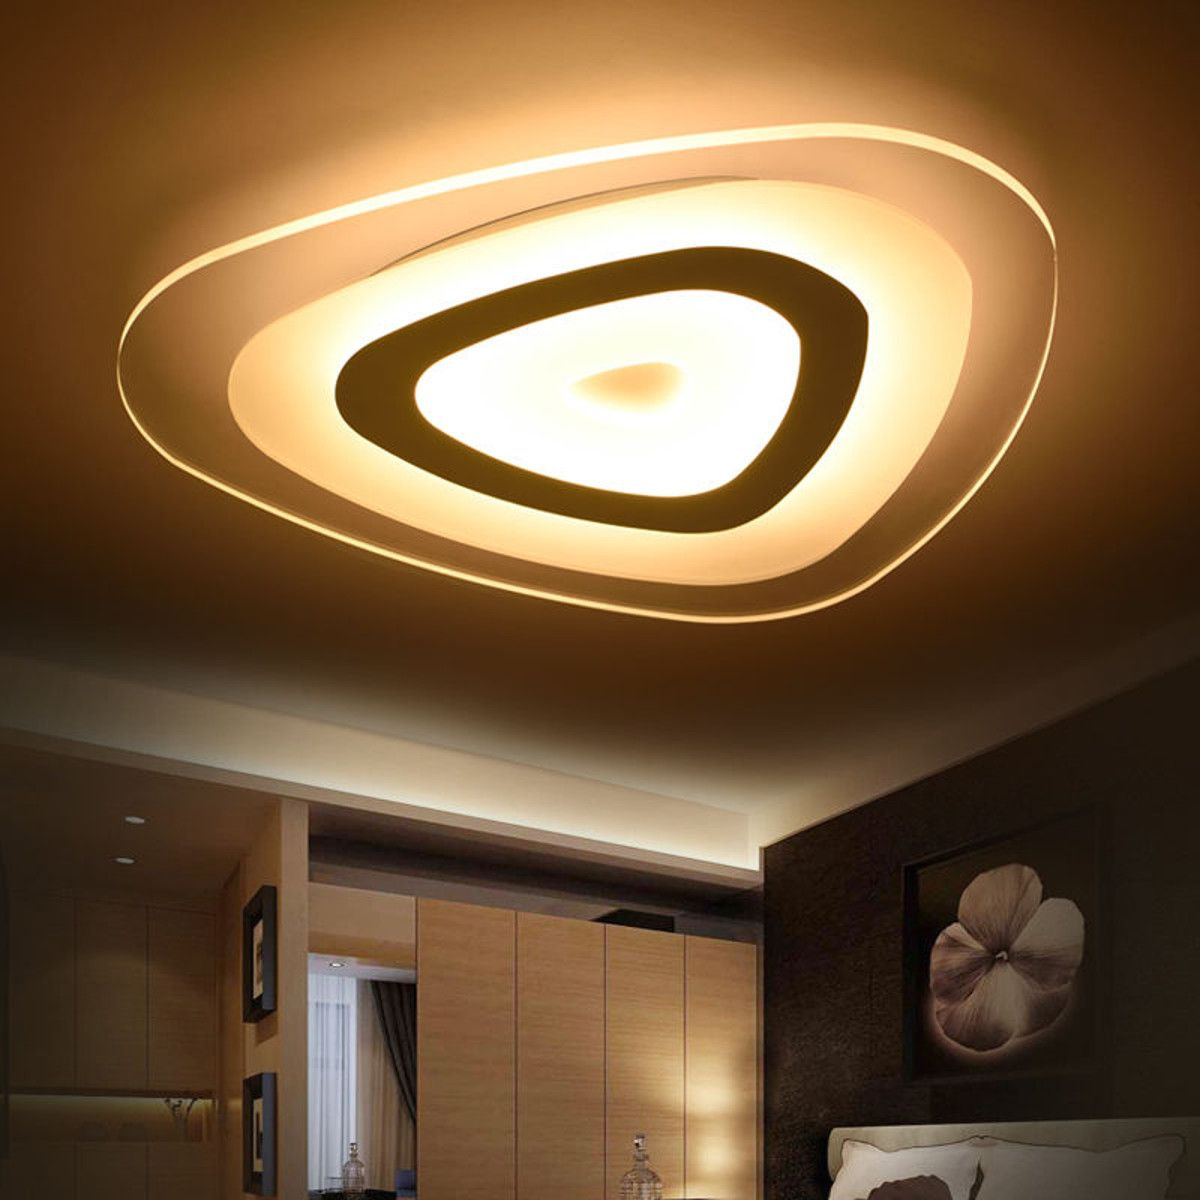 Moaere Hot Sale 3 Color Adjustable Led Ceiling Lights Modern Mango